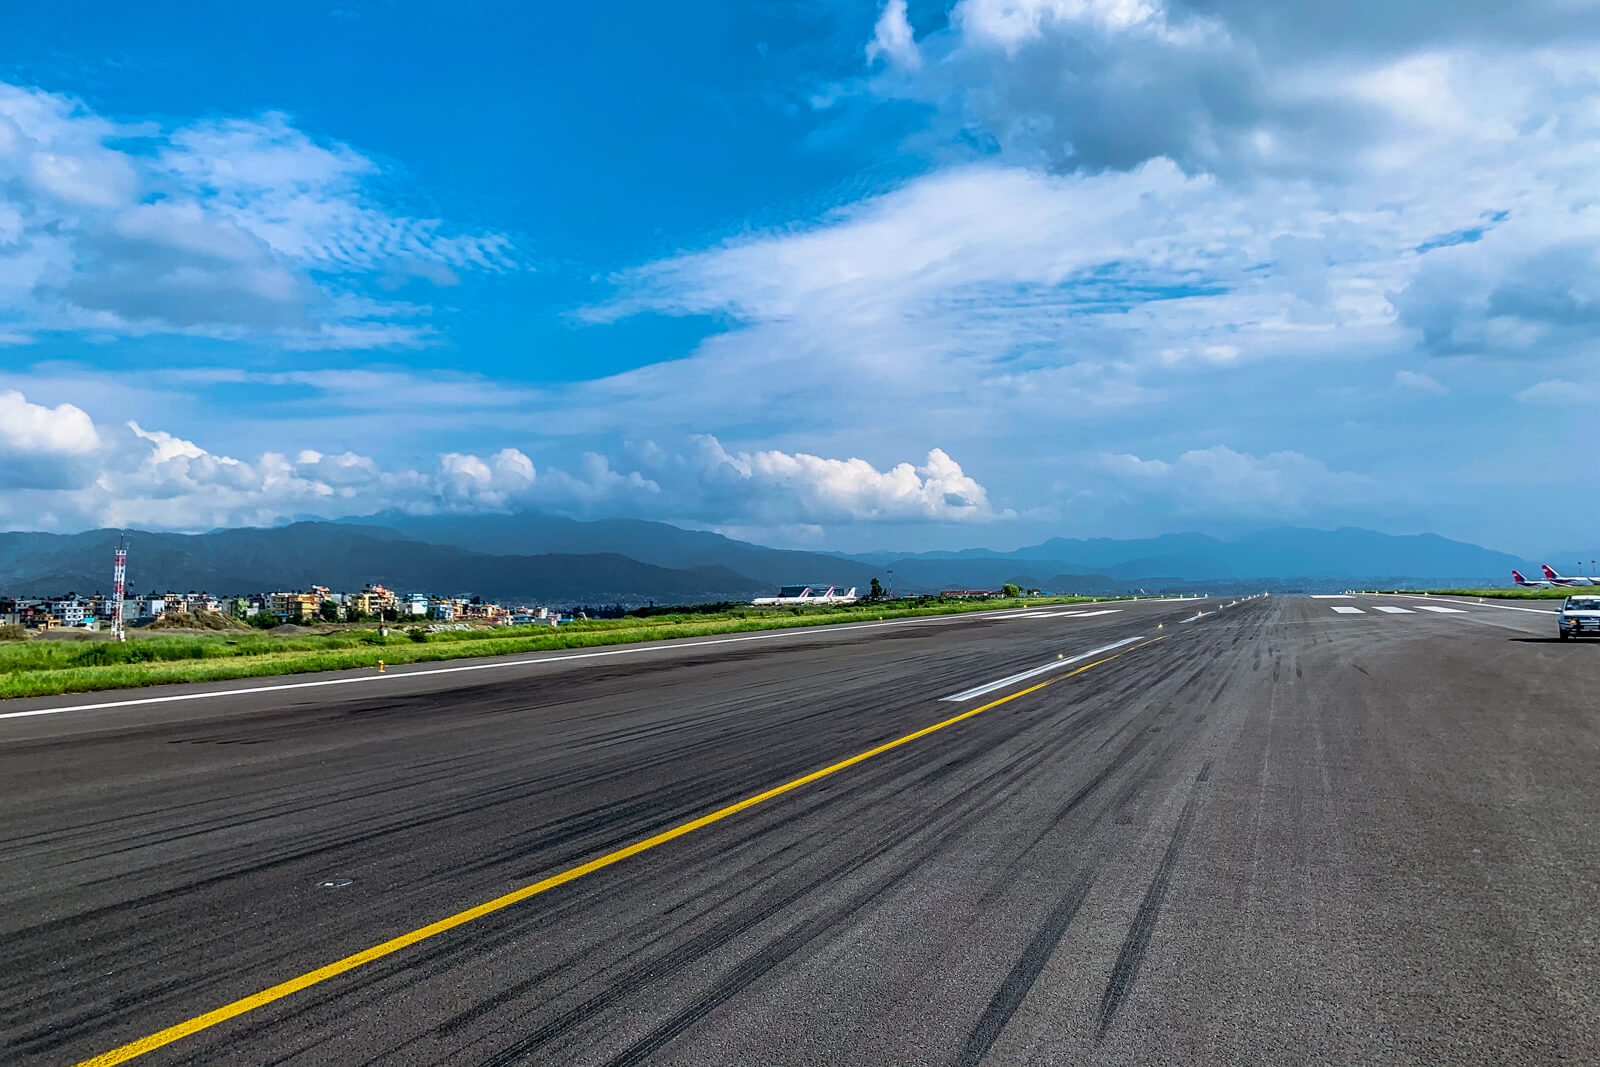 Kathmandu airport gets facelift during lockdown